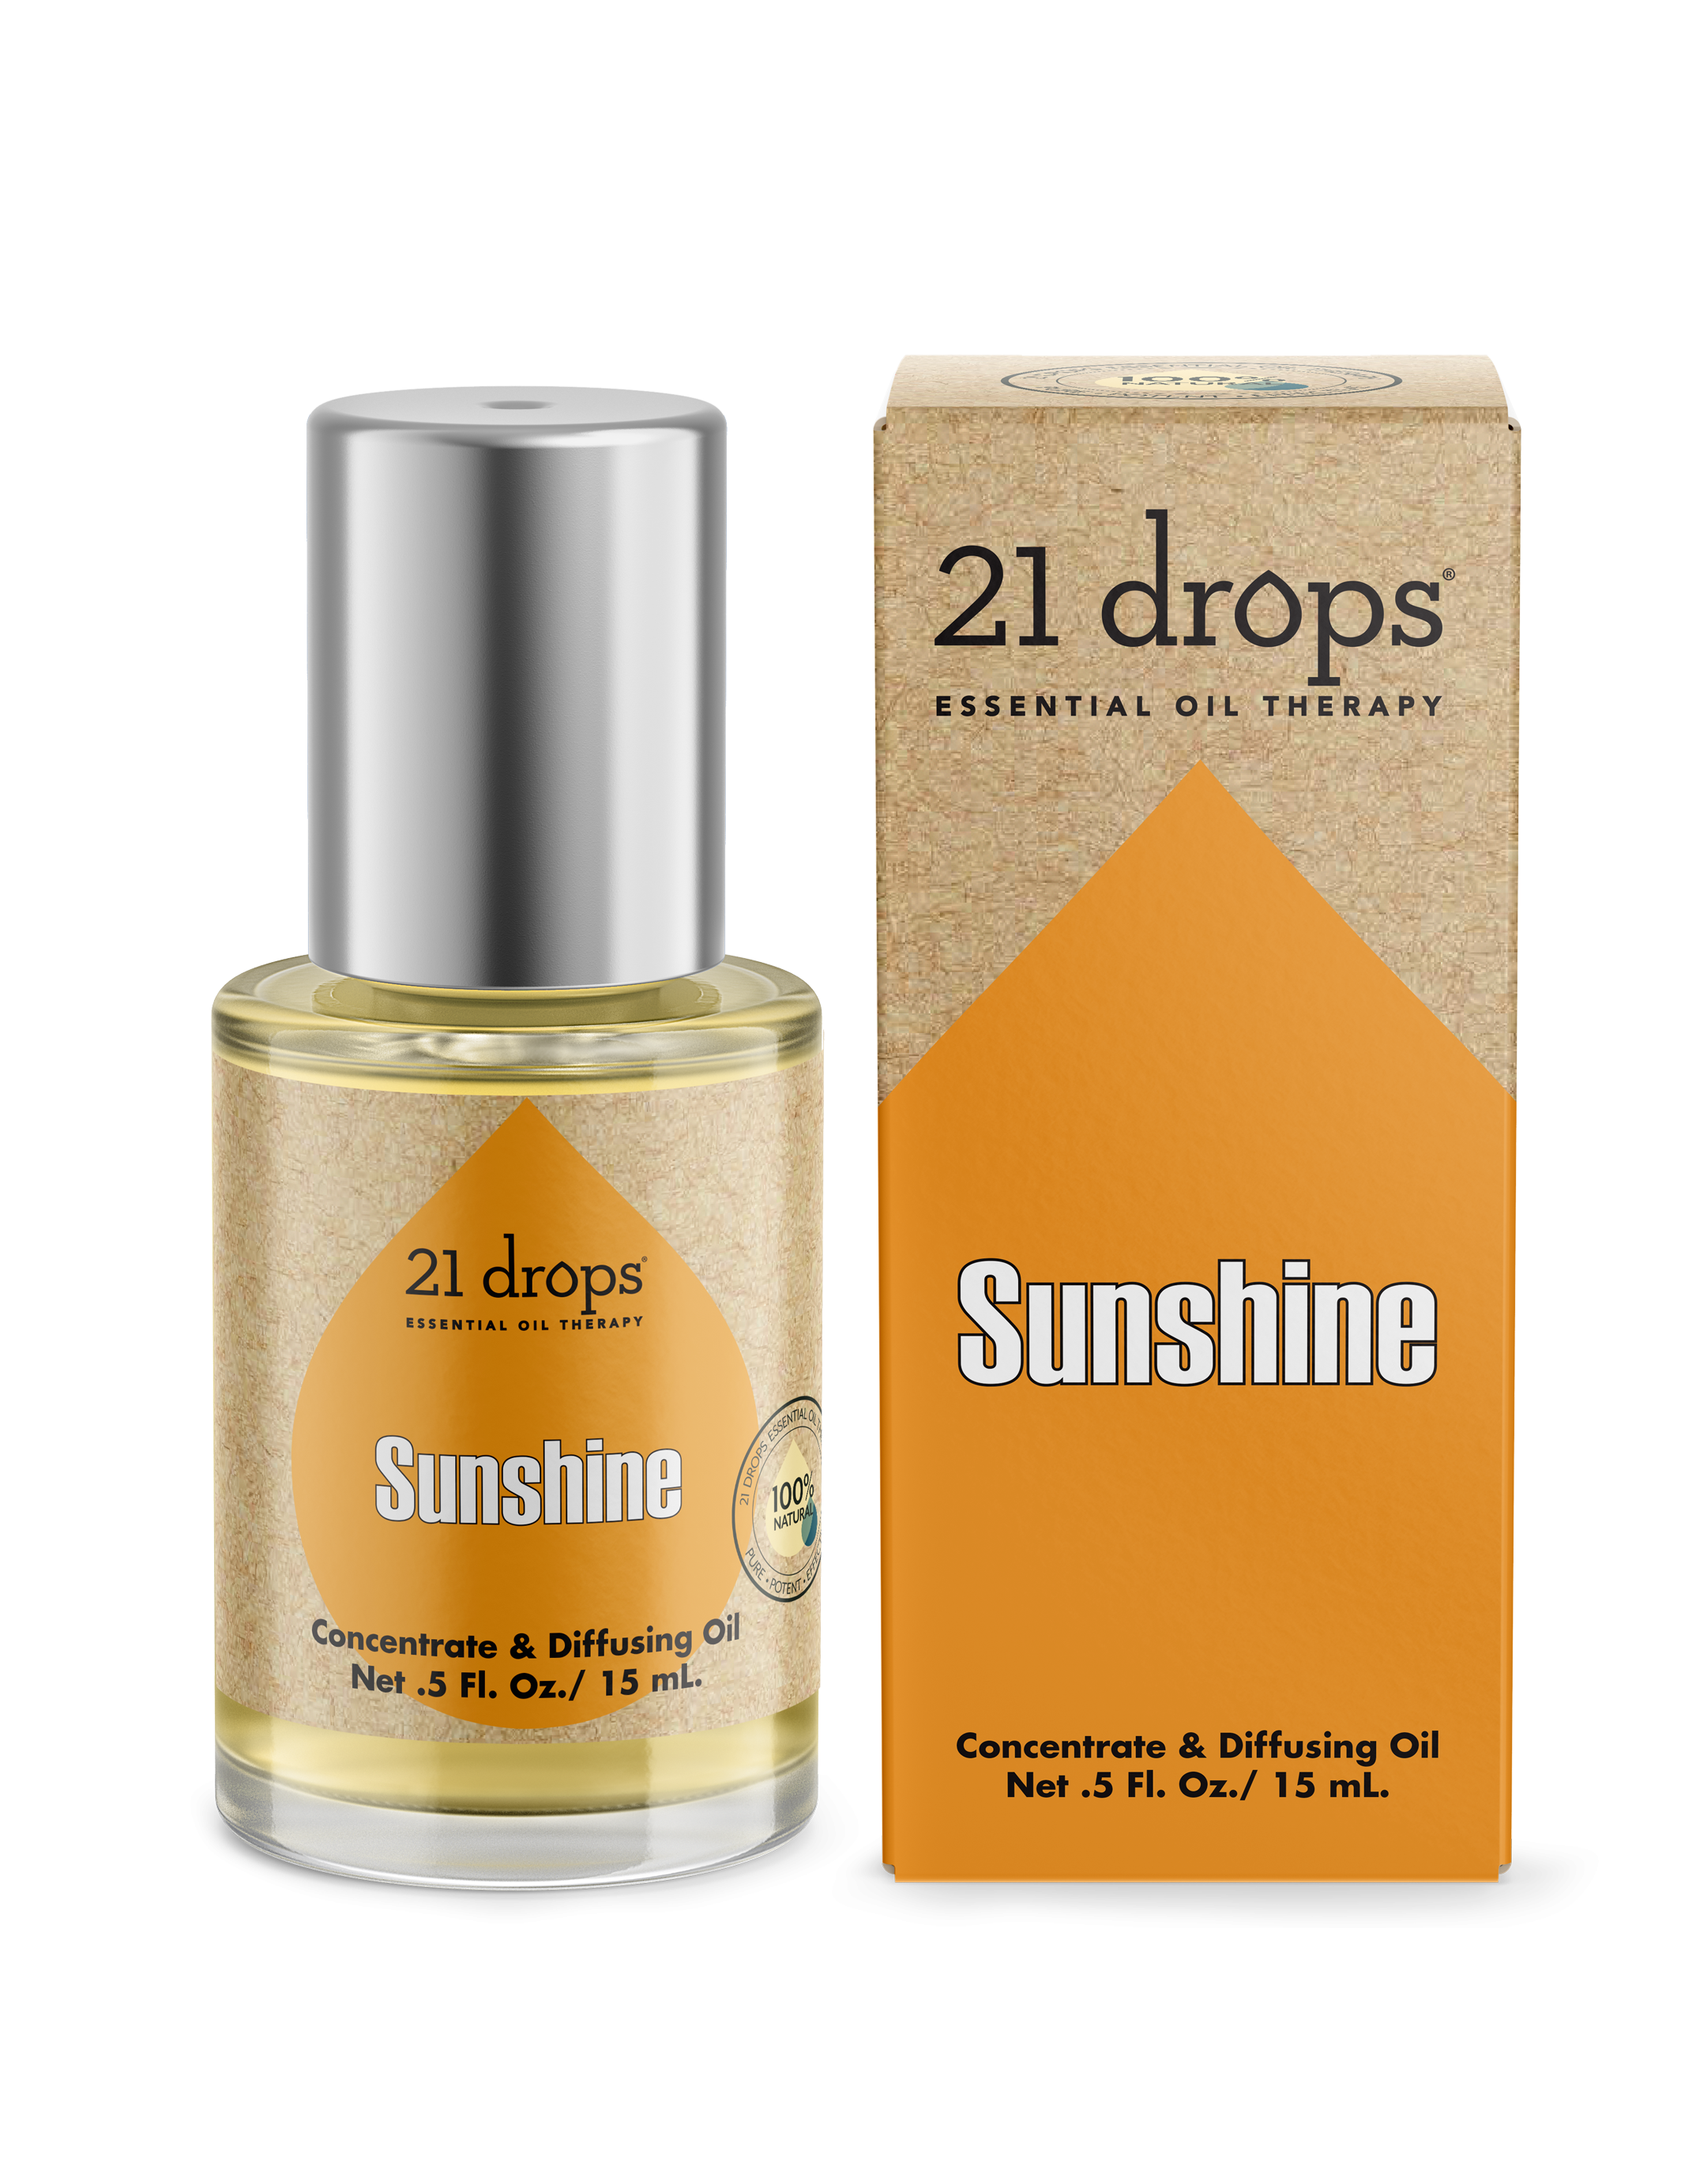 21 drops sunshine essential oil concentrate diffusing oil